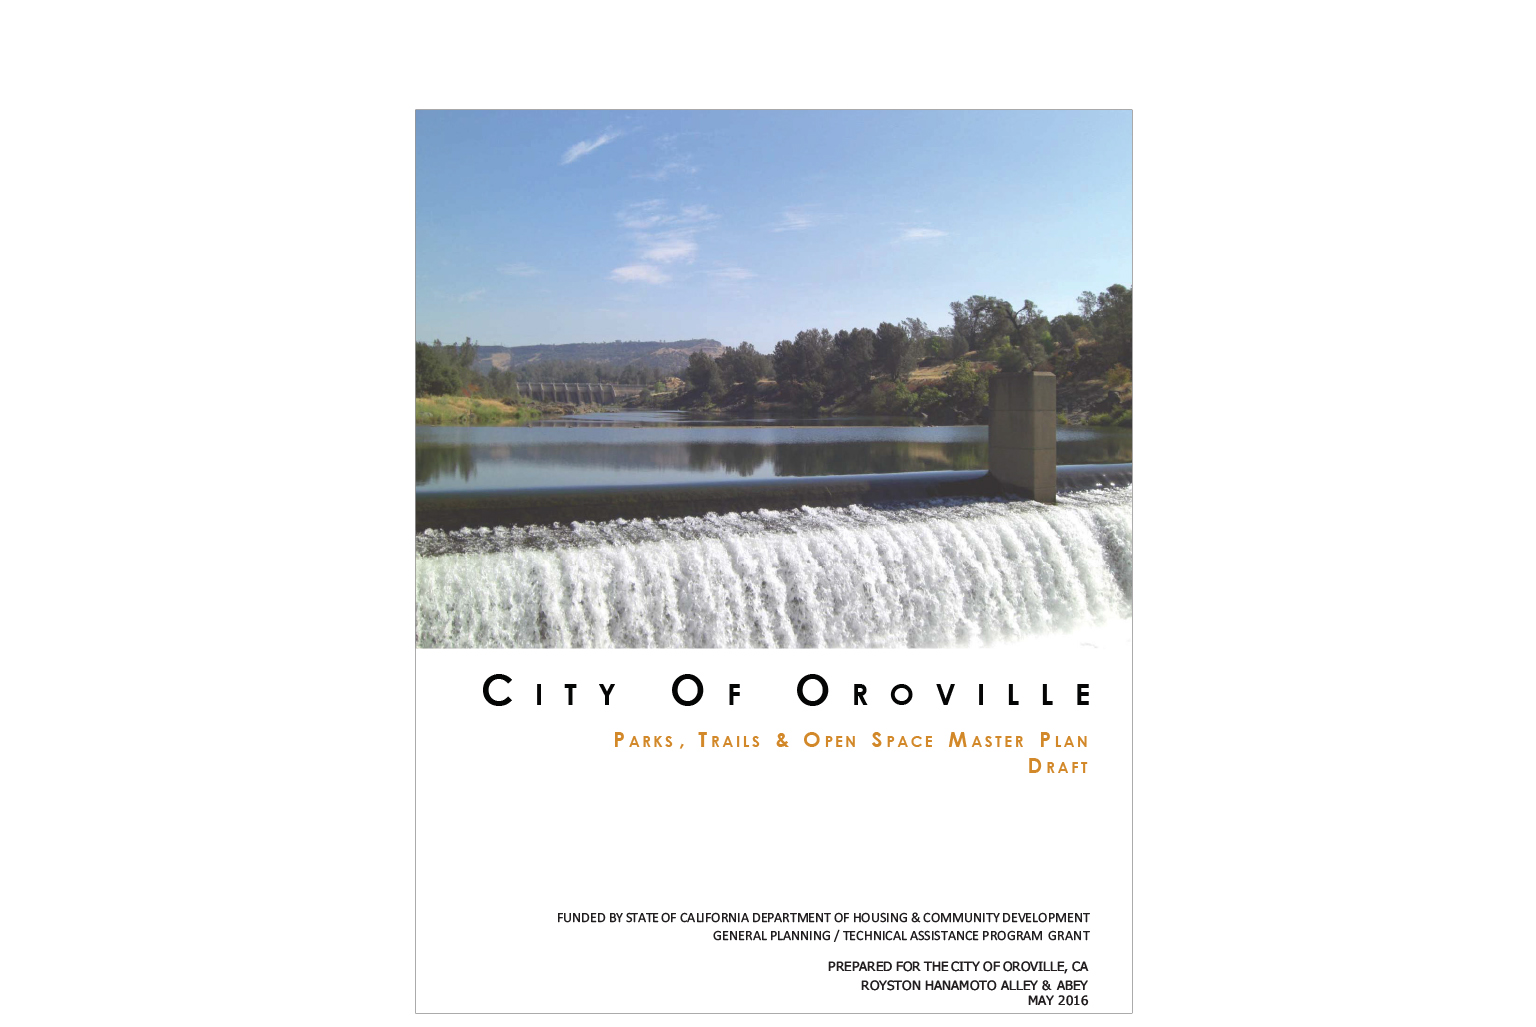 Oroville Parks, Trails, and Open Space Master Plan